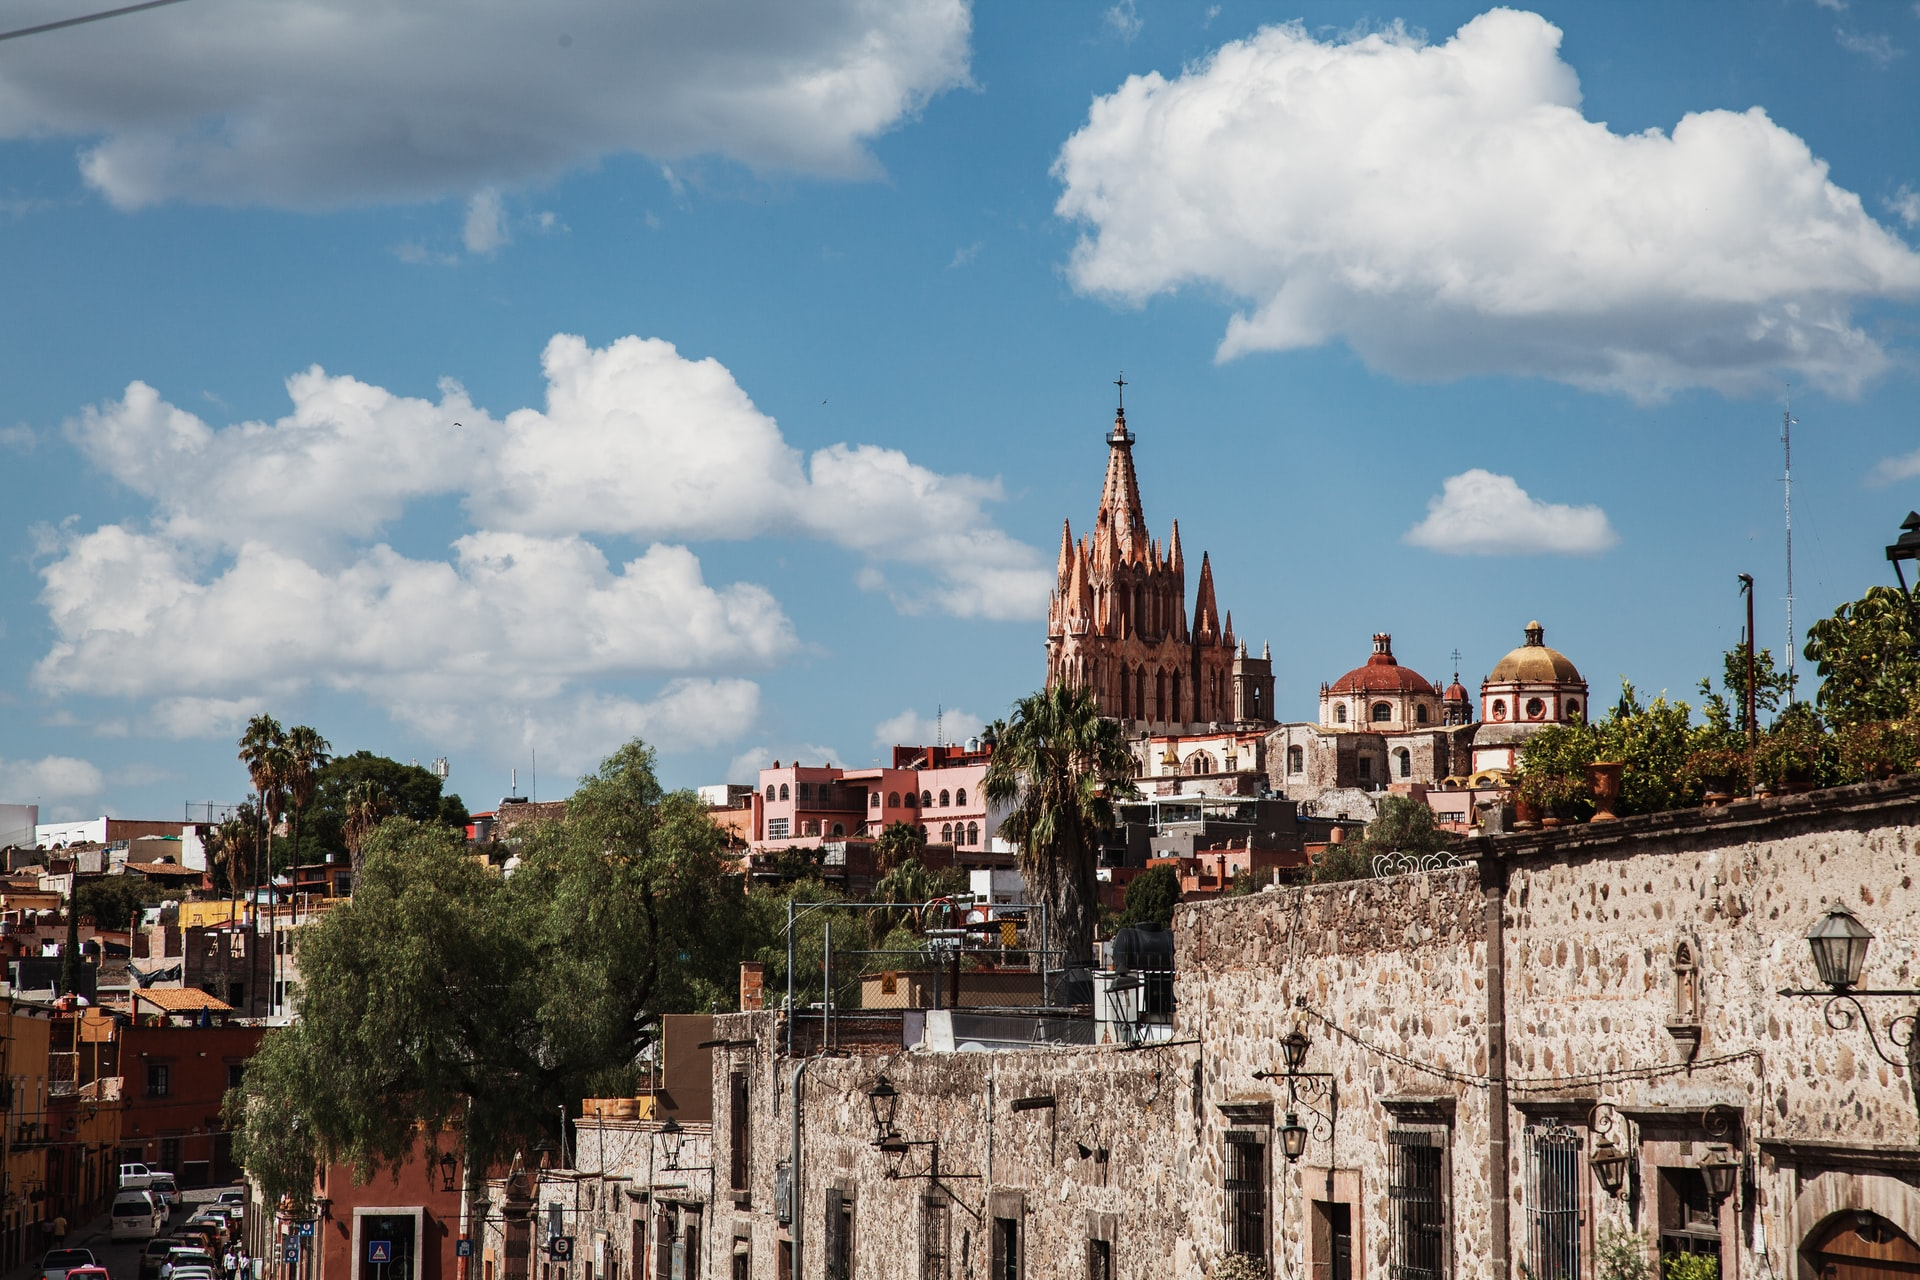 San Miguel de Allende, one of many cities in central Mexico that will have to find strategies to cope with an emerging water crisis. Image credit: Jillian Kim/Unsplash